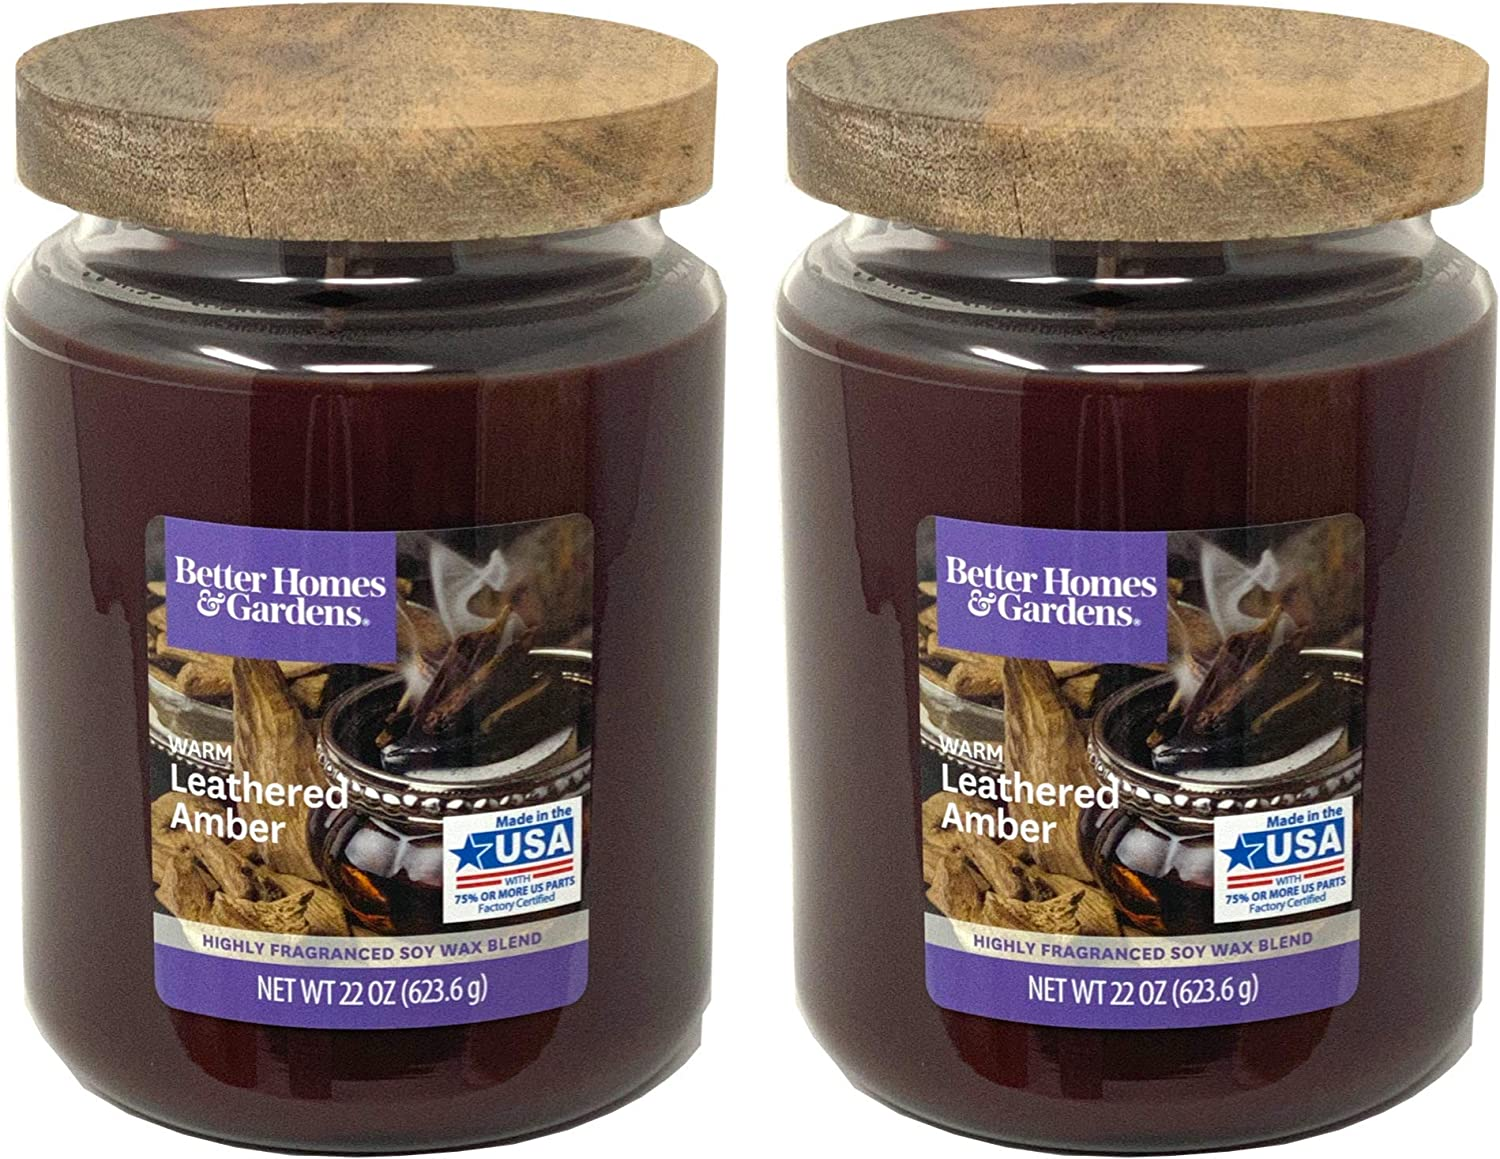 Better Homes Gardens 22oz Scented Candle, Warm Leathered Amber 2-Pack